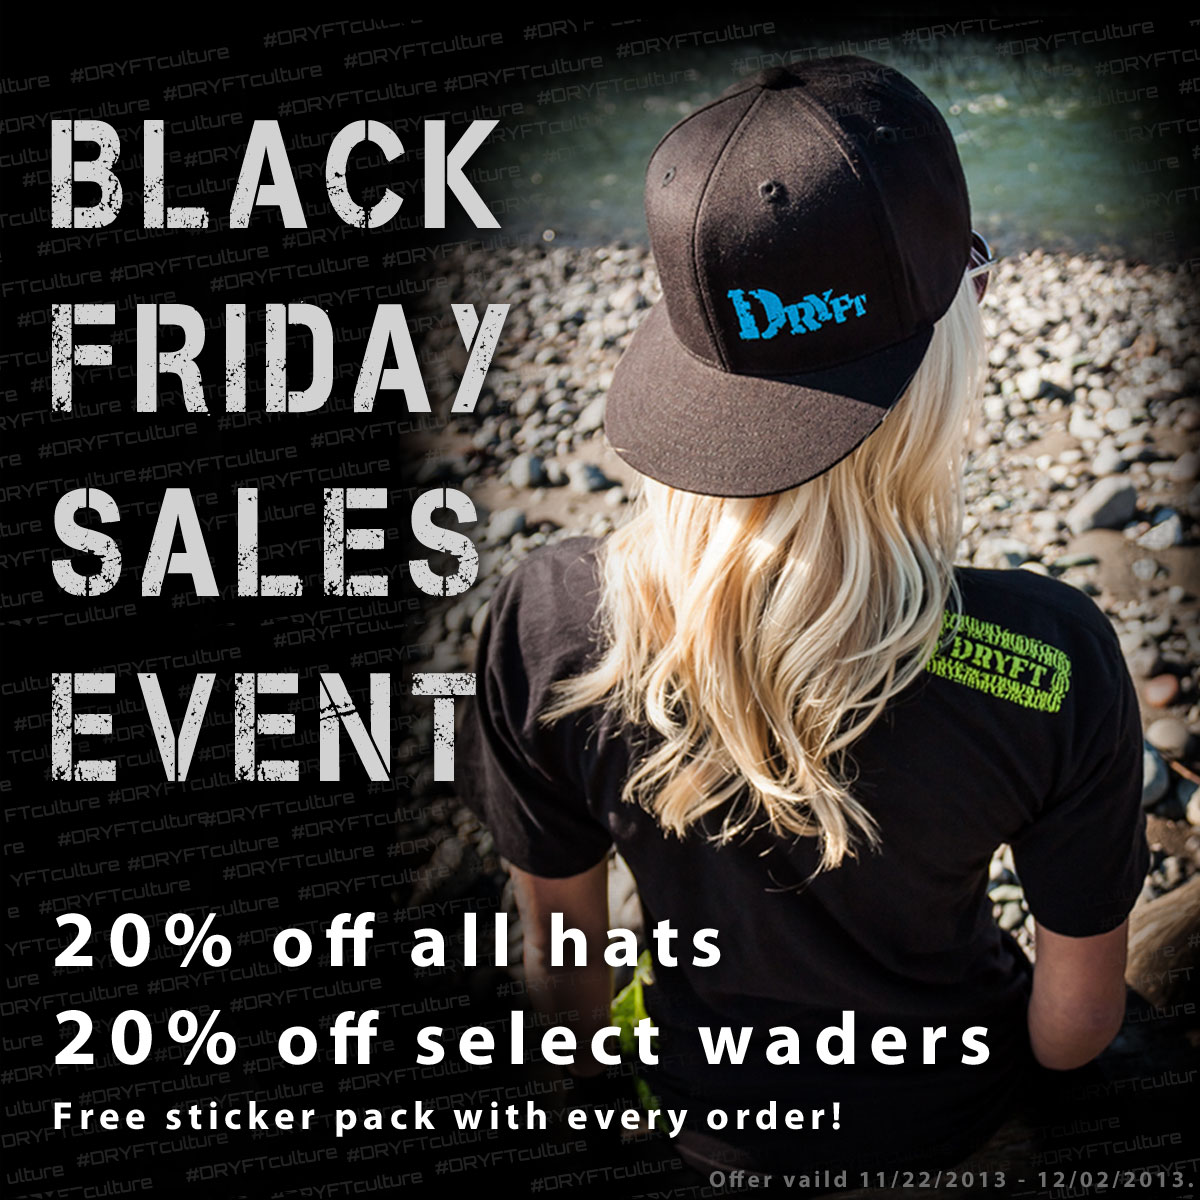 Black Friday Sales Event - DRYFT waders and hats